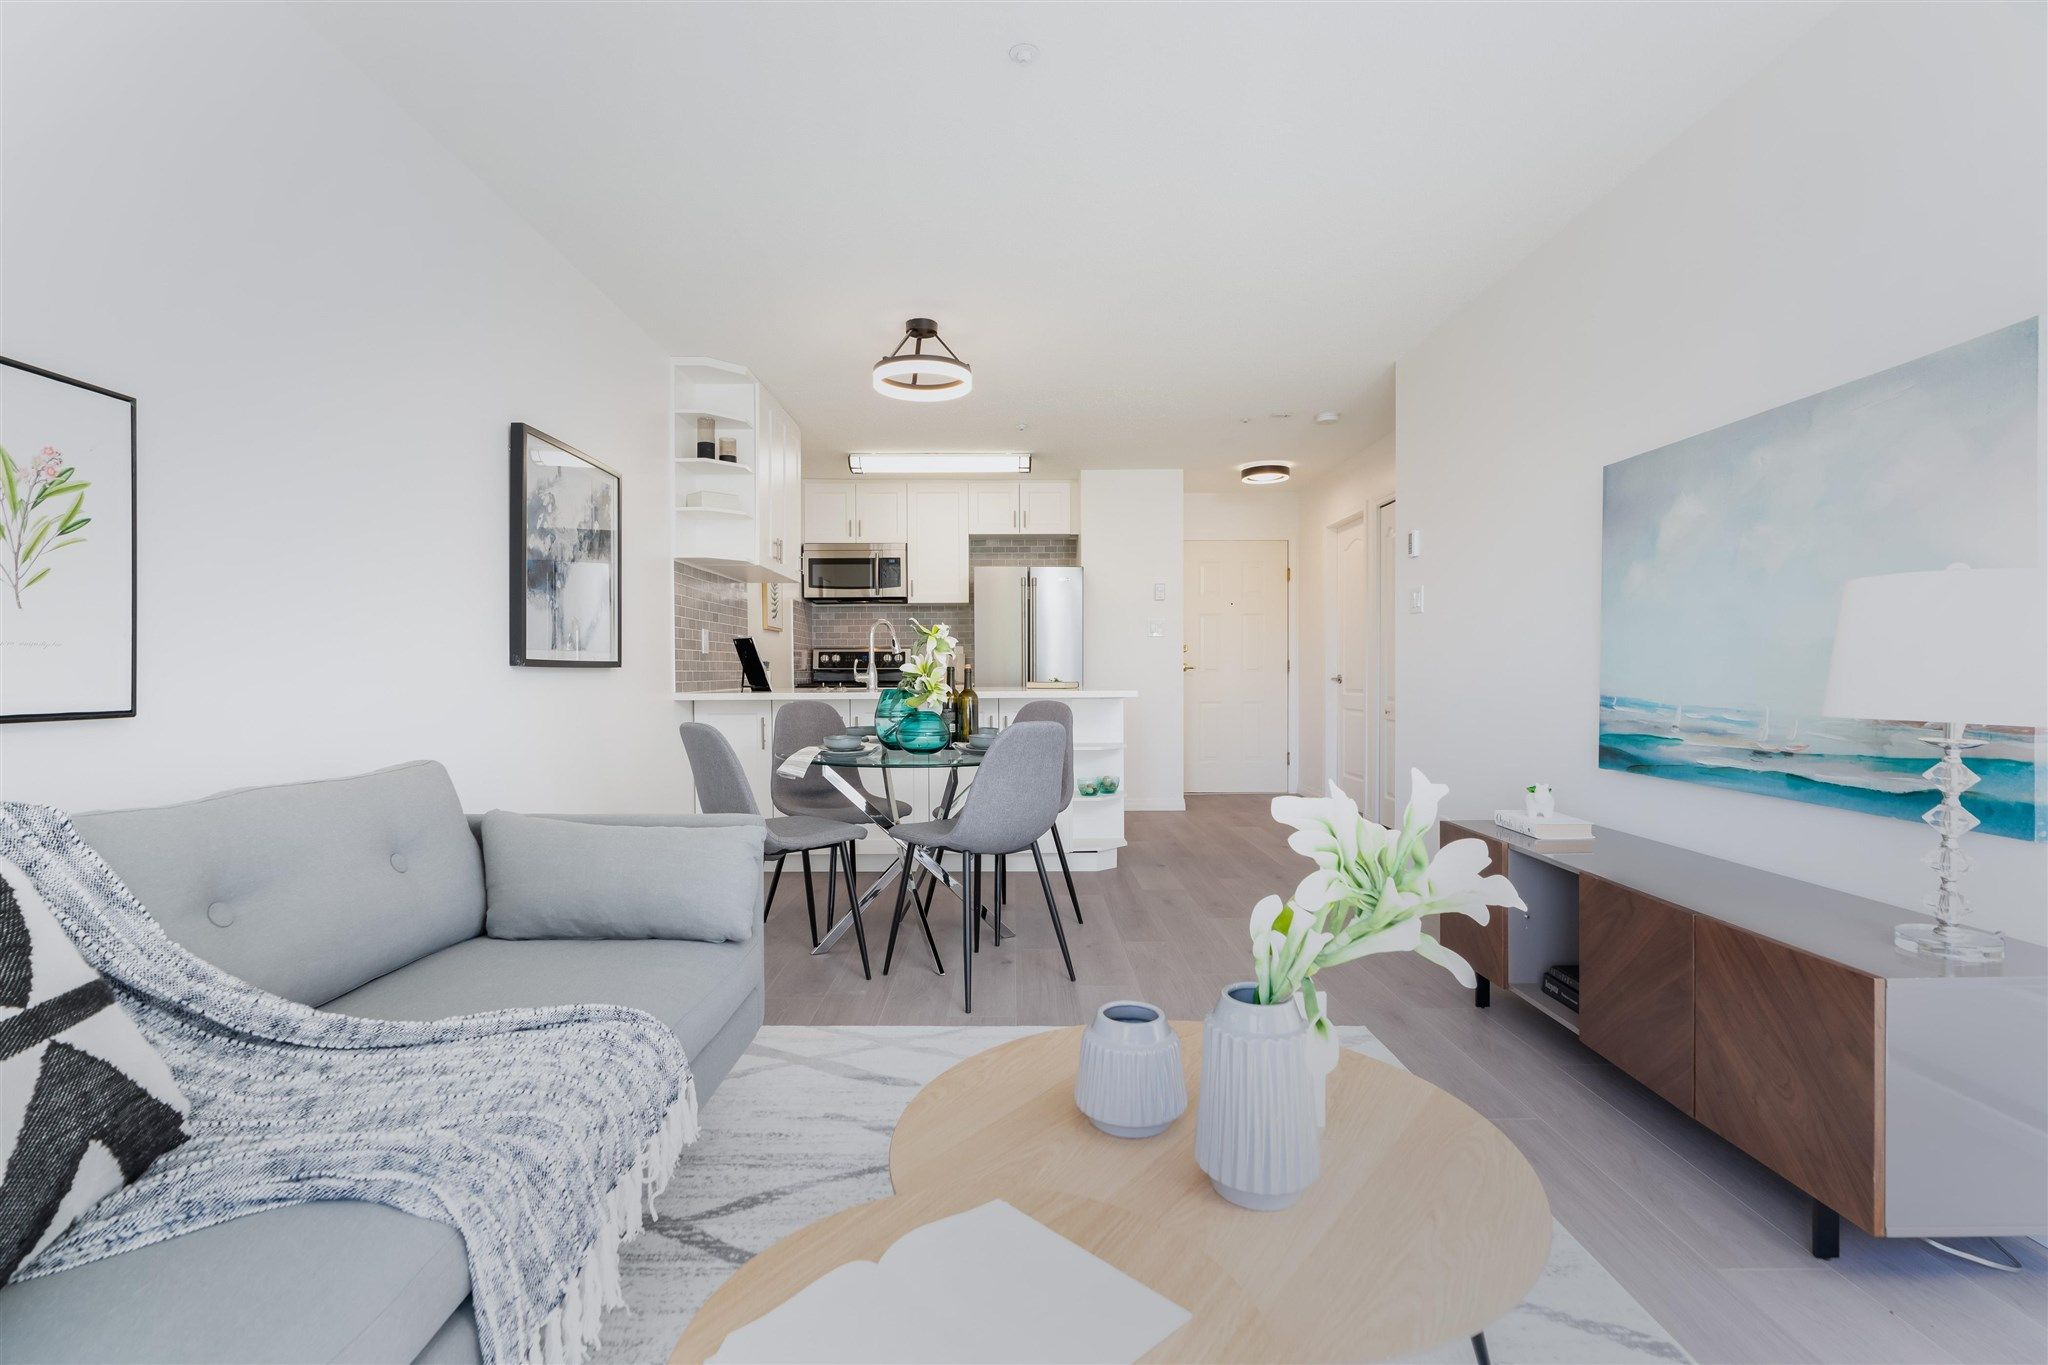 Main Photo: 411 3480 YARDLEY AVENUE in Vancouver: Collingwood VE Condo for sale (Vancouver East)  : MLS®# R2594800